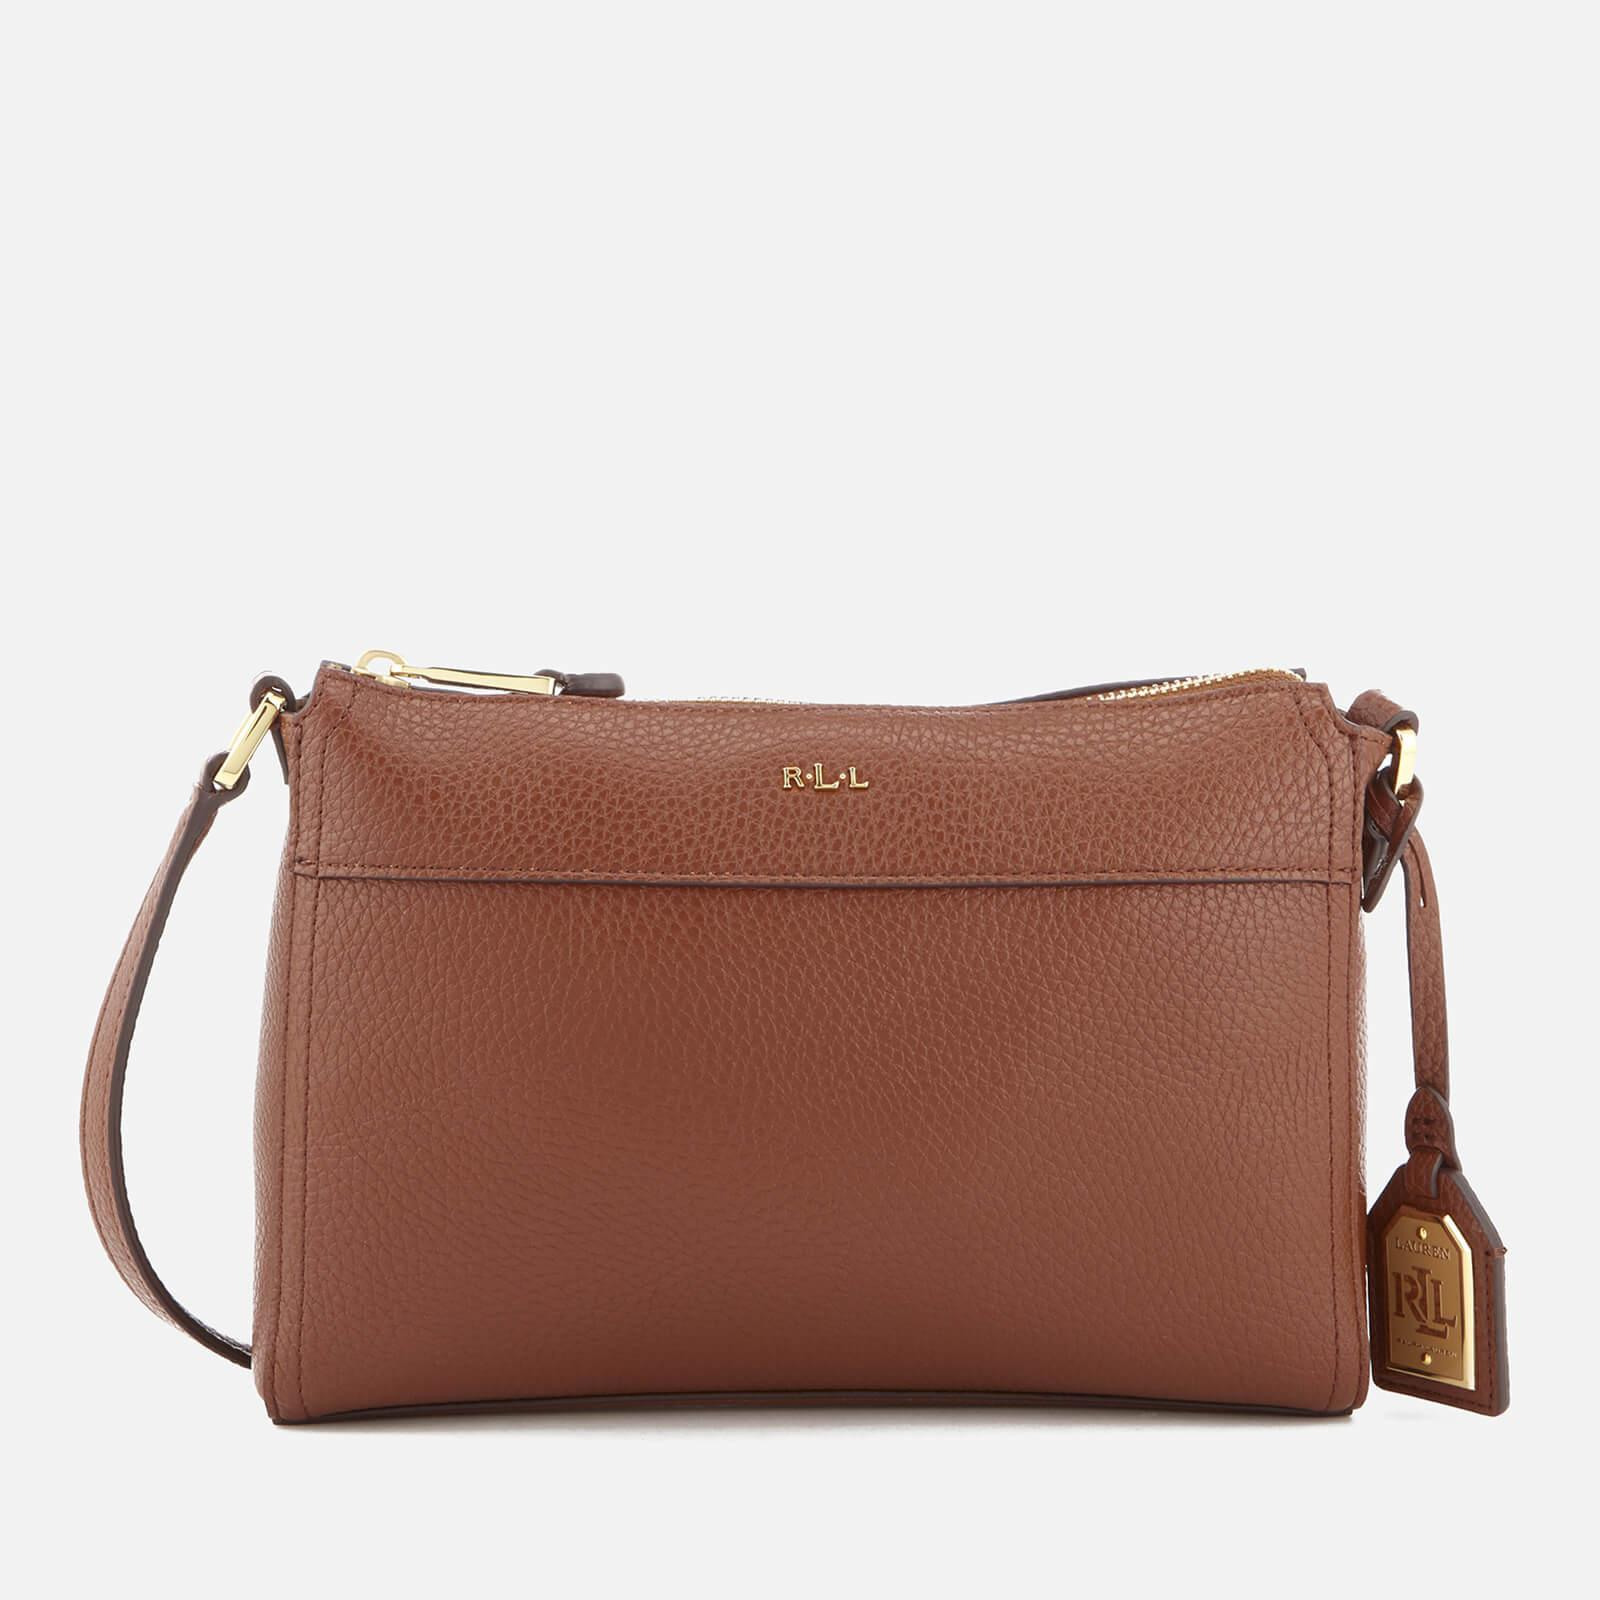 Lauren By Ralph Lauren Milford Brooklyn Cross Body Bag in Brown - Lyst 8418f6d1cc